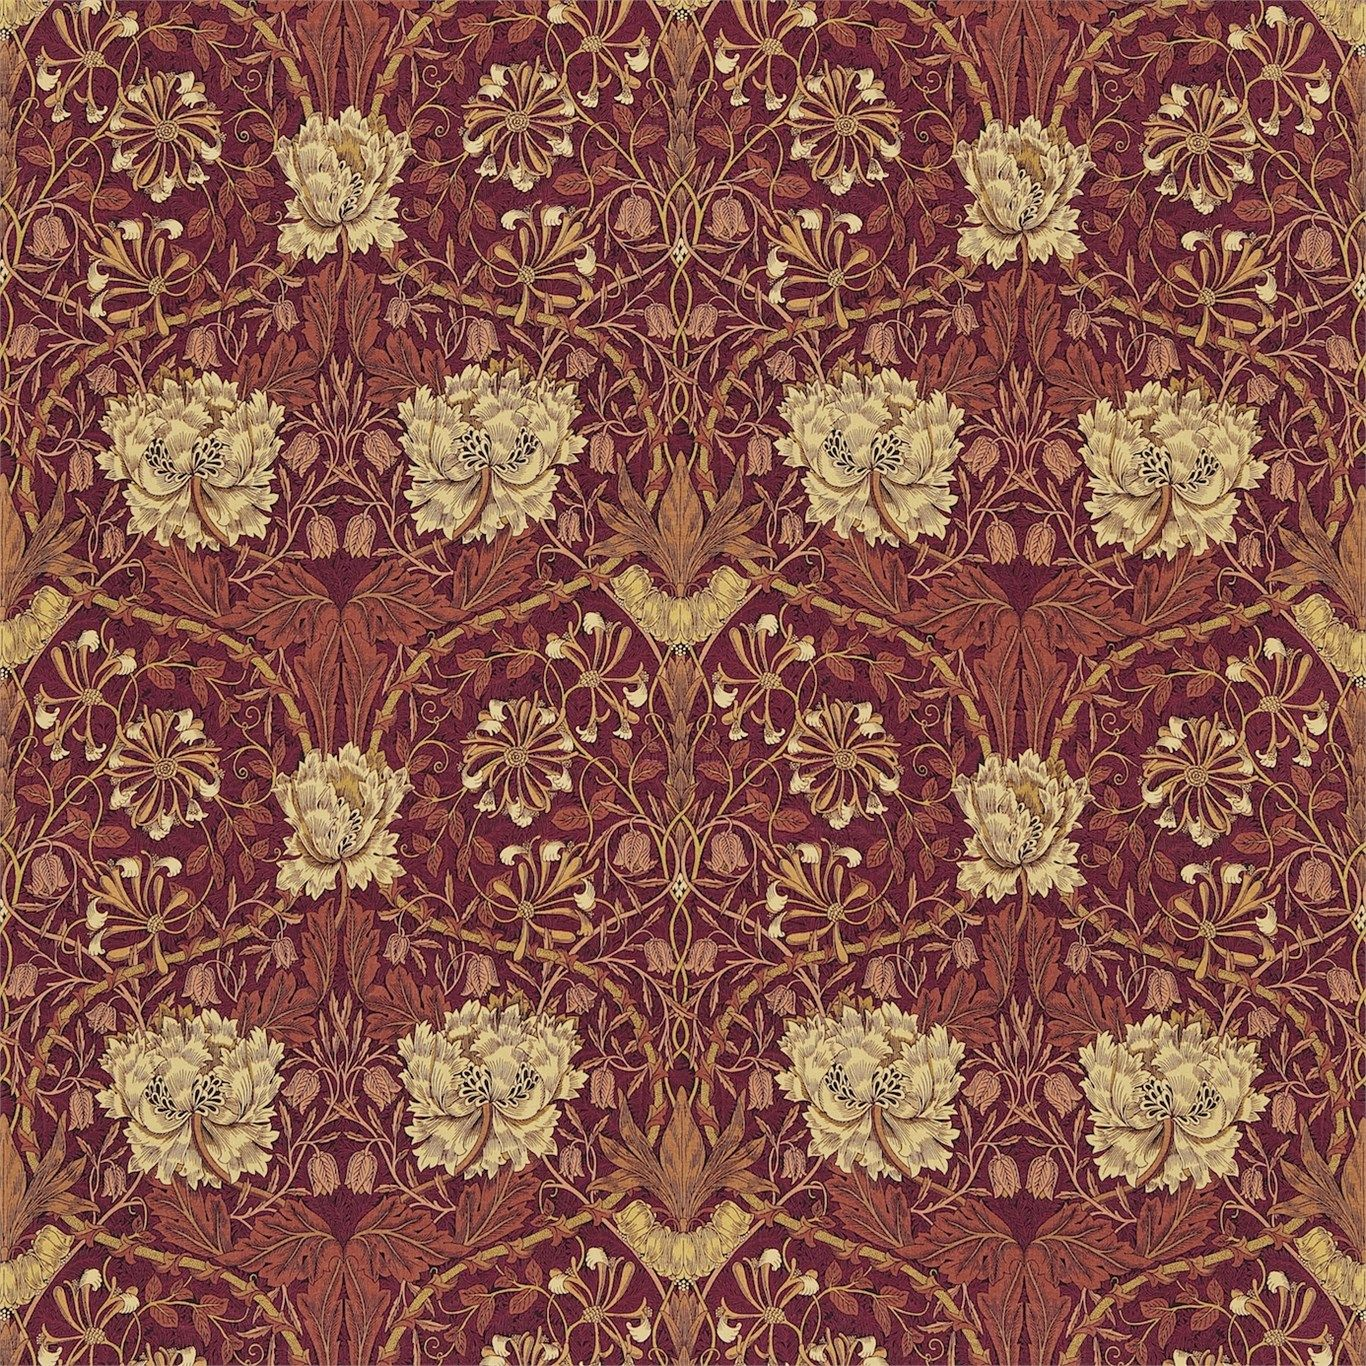 Arts and crafts prints - The Original Morris Co Arts And Crafts Fabrics And Wallpaper Designs By William